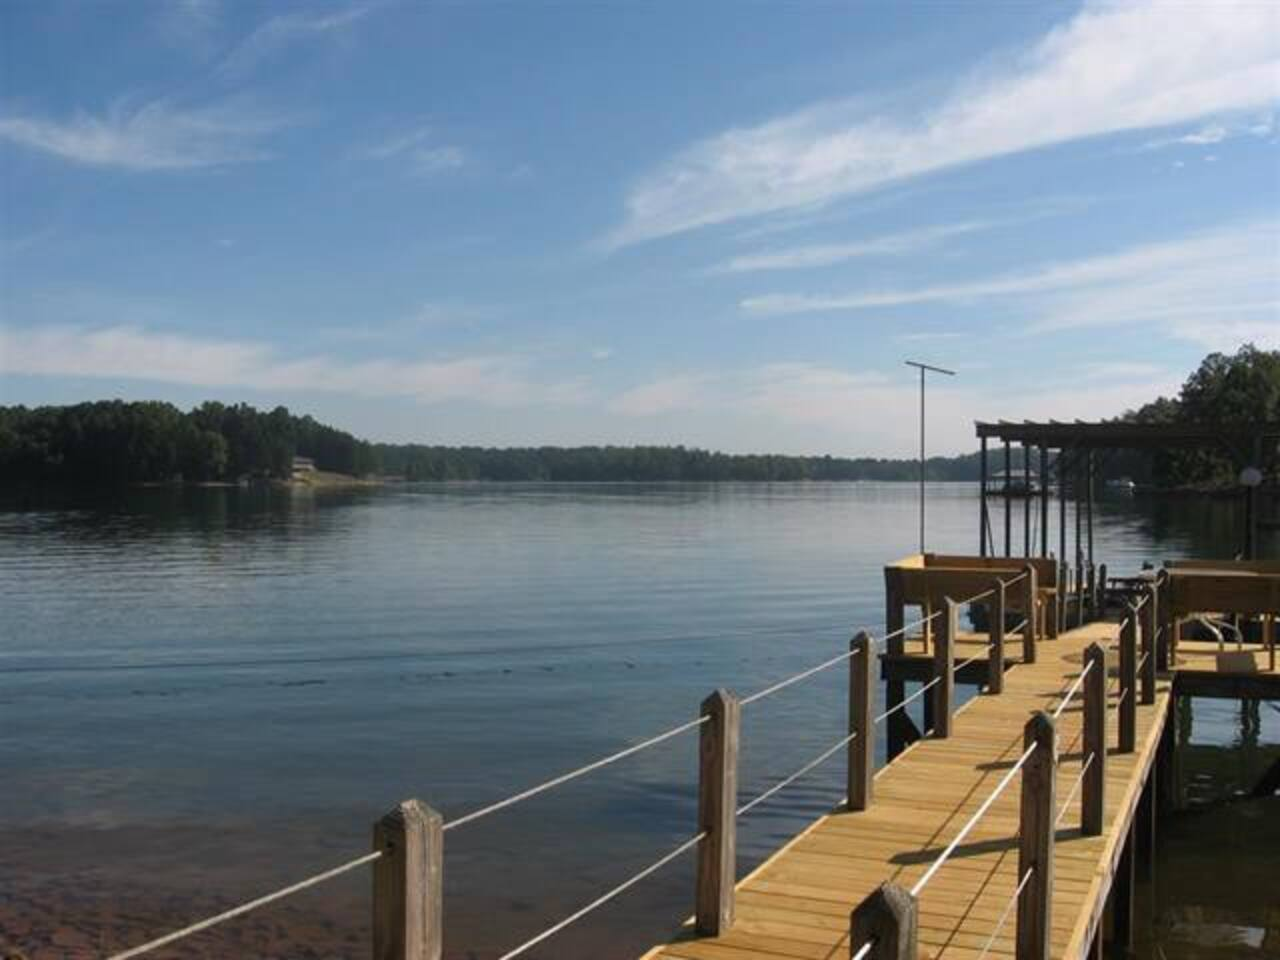 Best View on Lake Keowee - View from Sandy Beach